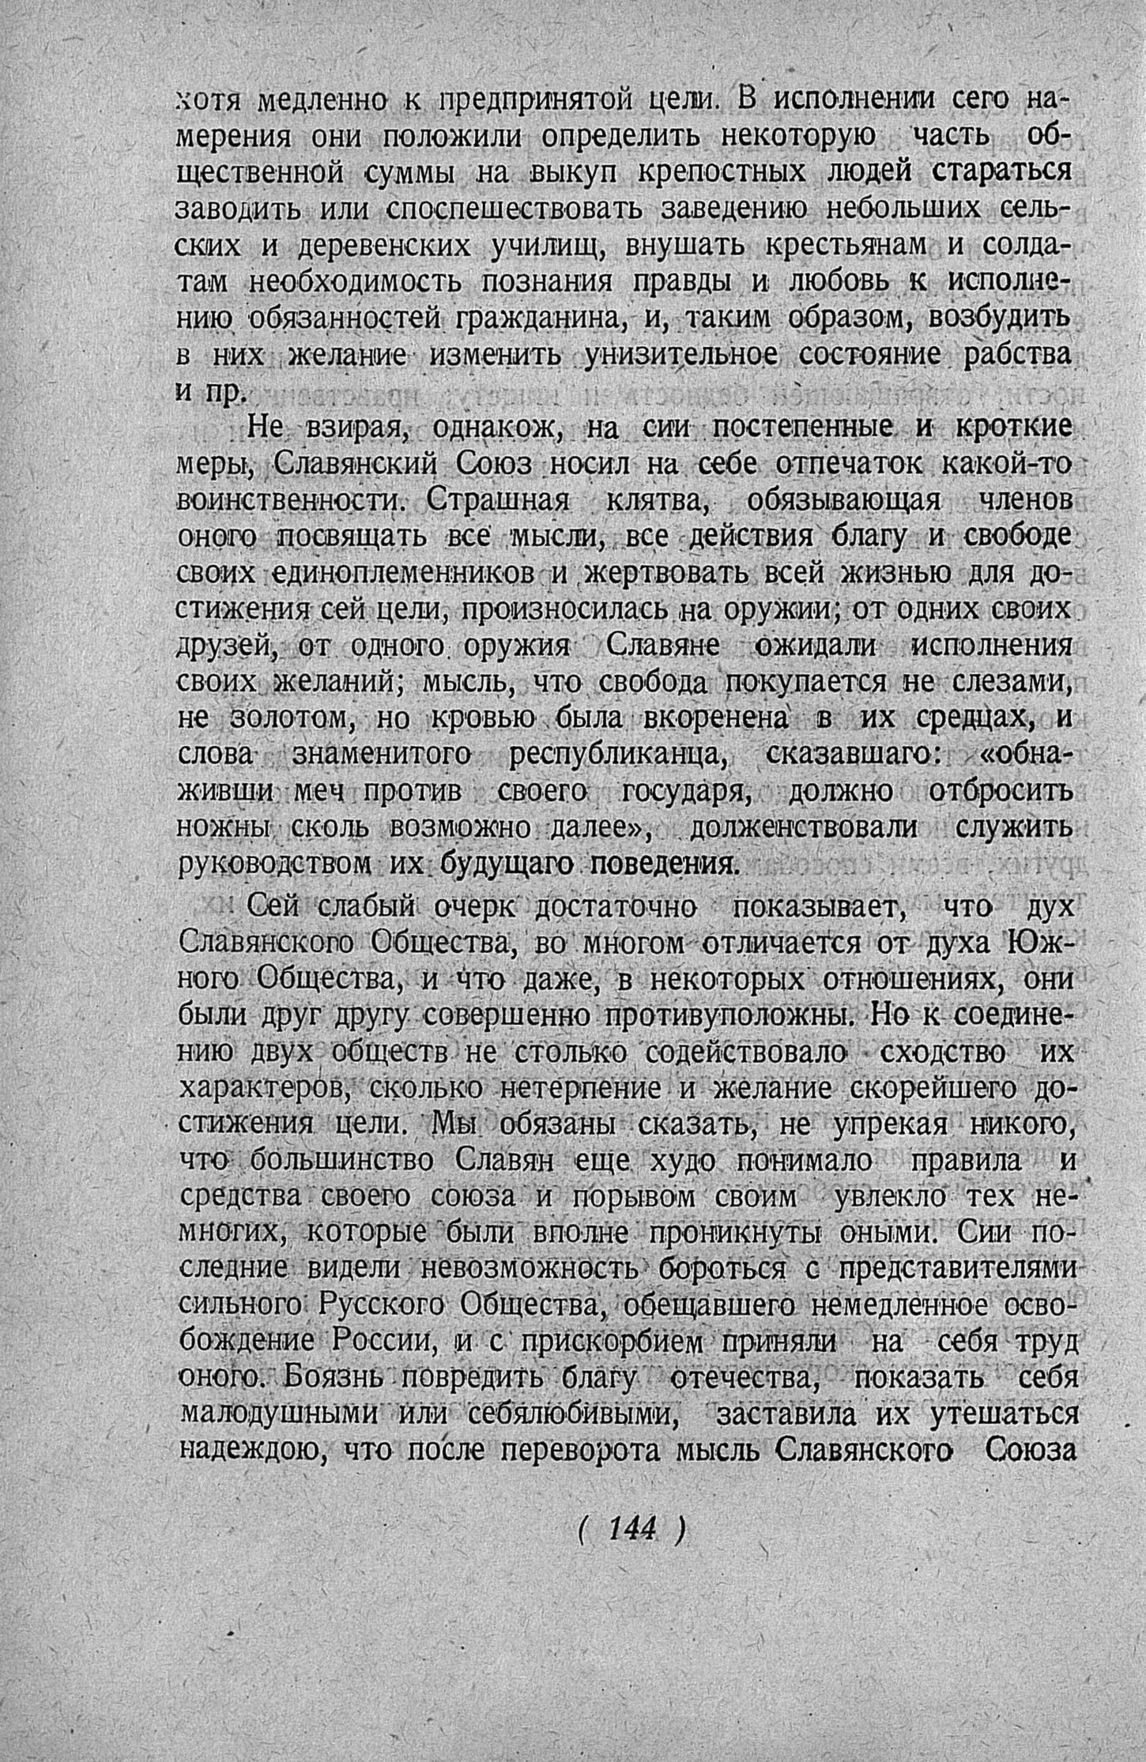 http://elib.shpl.ru/pages/2079487/zooms/7